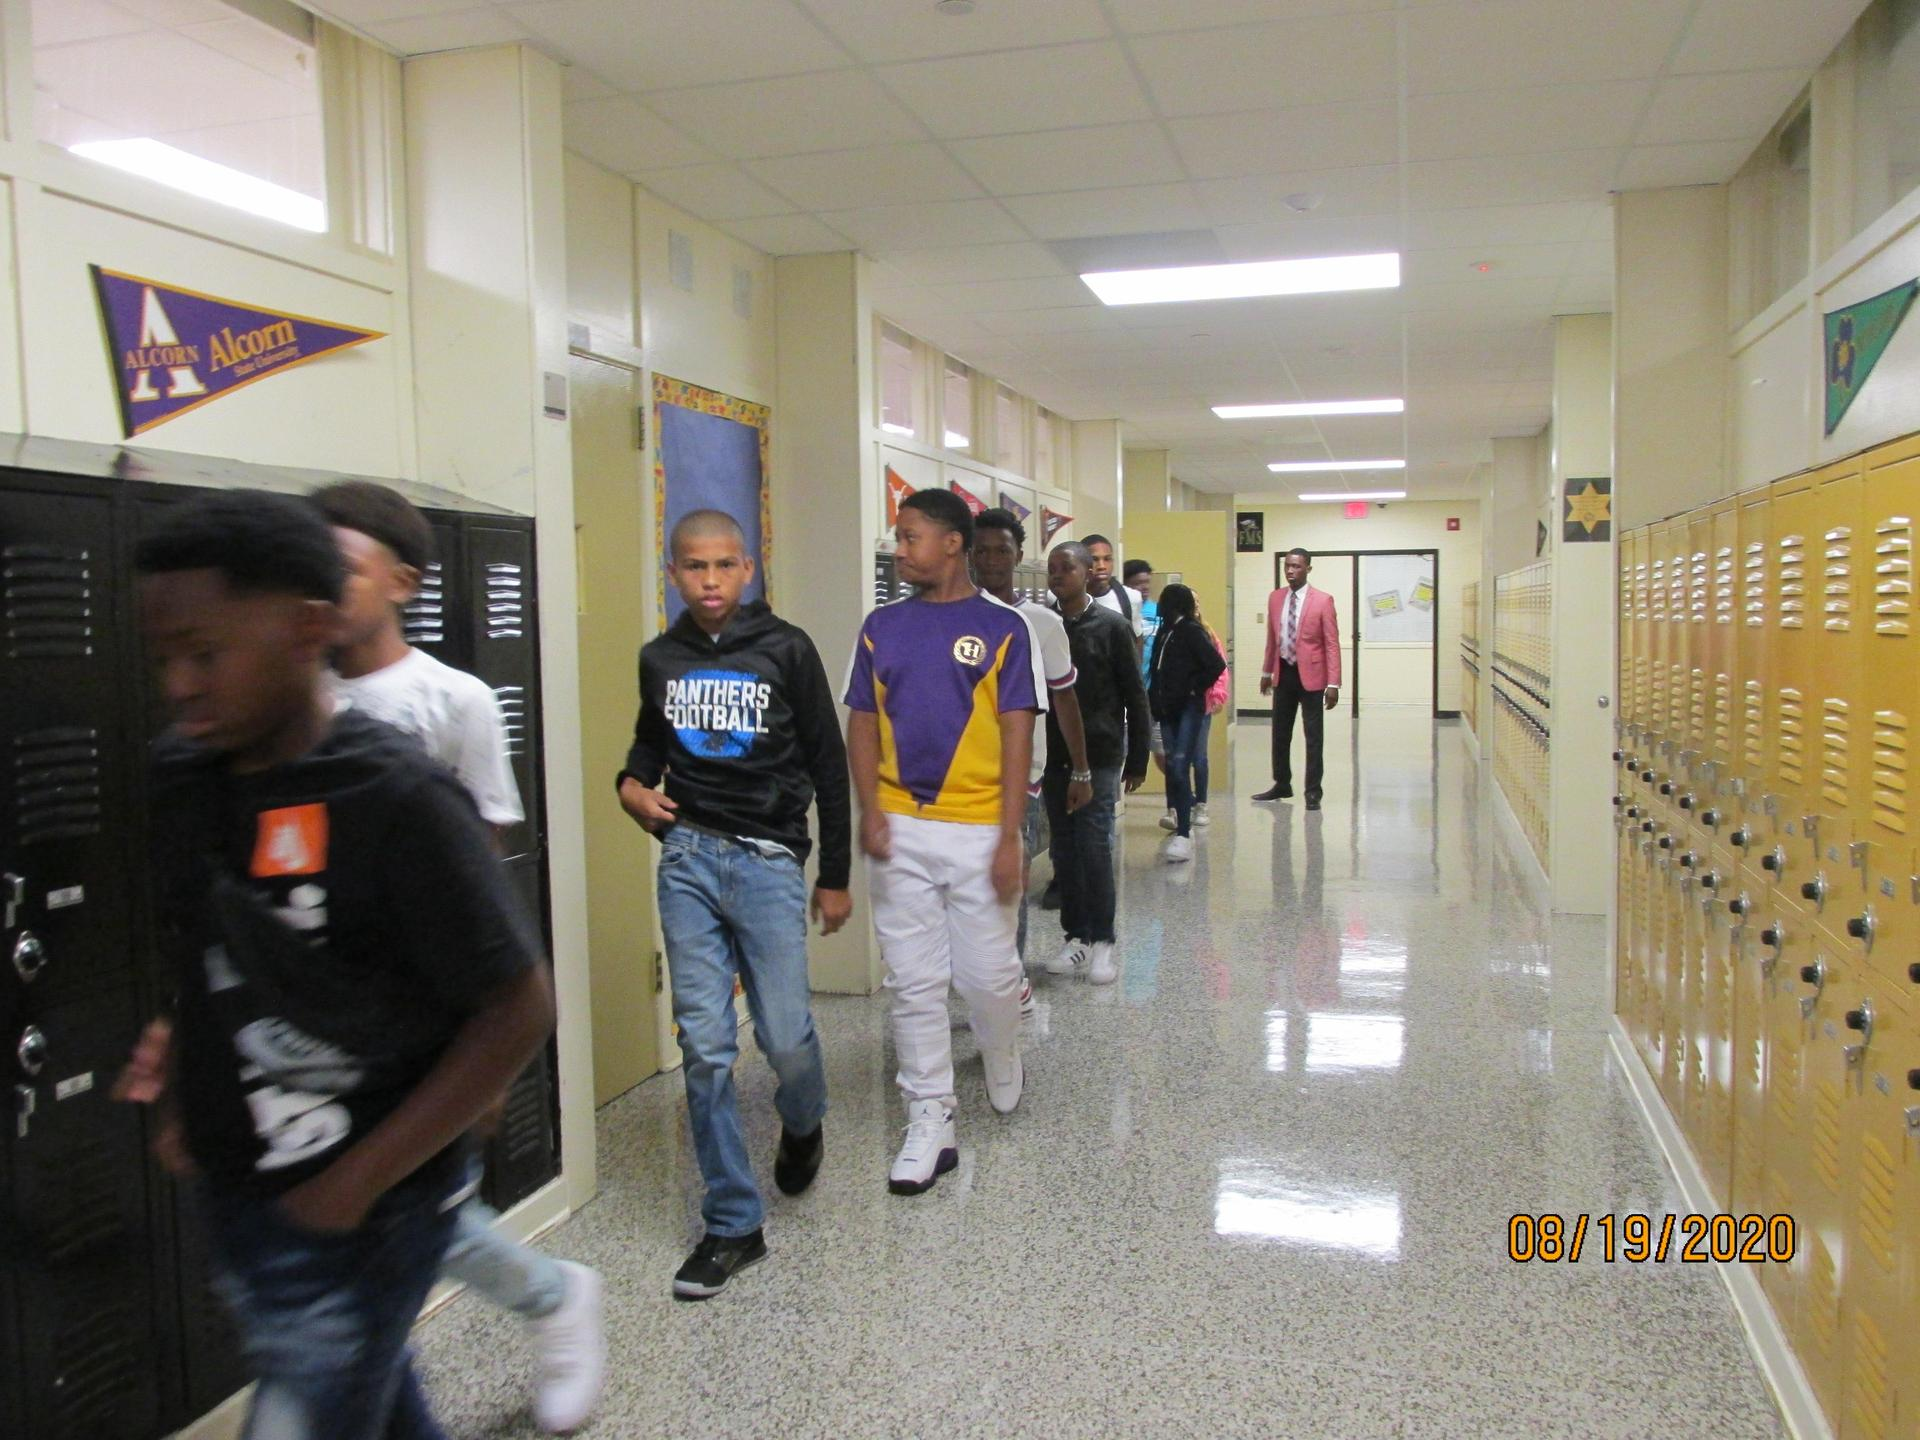 Students walking the hall in line